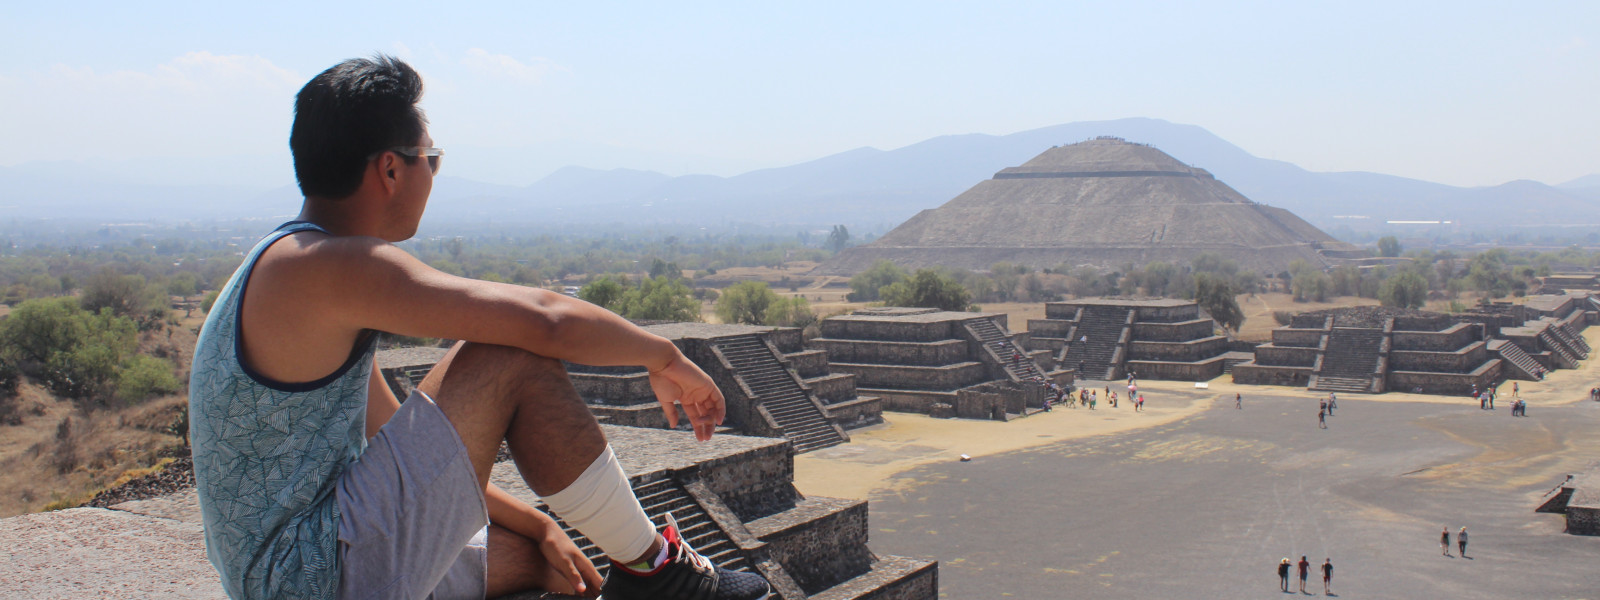 Student sitting and enjoying view of the Pyramid of the Moon